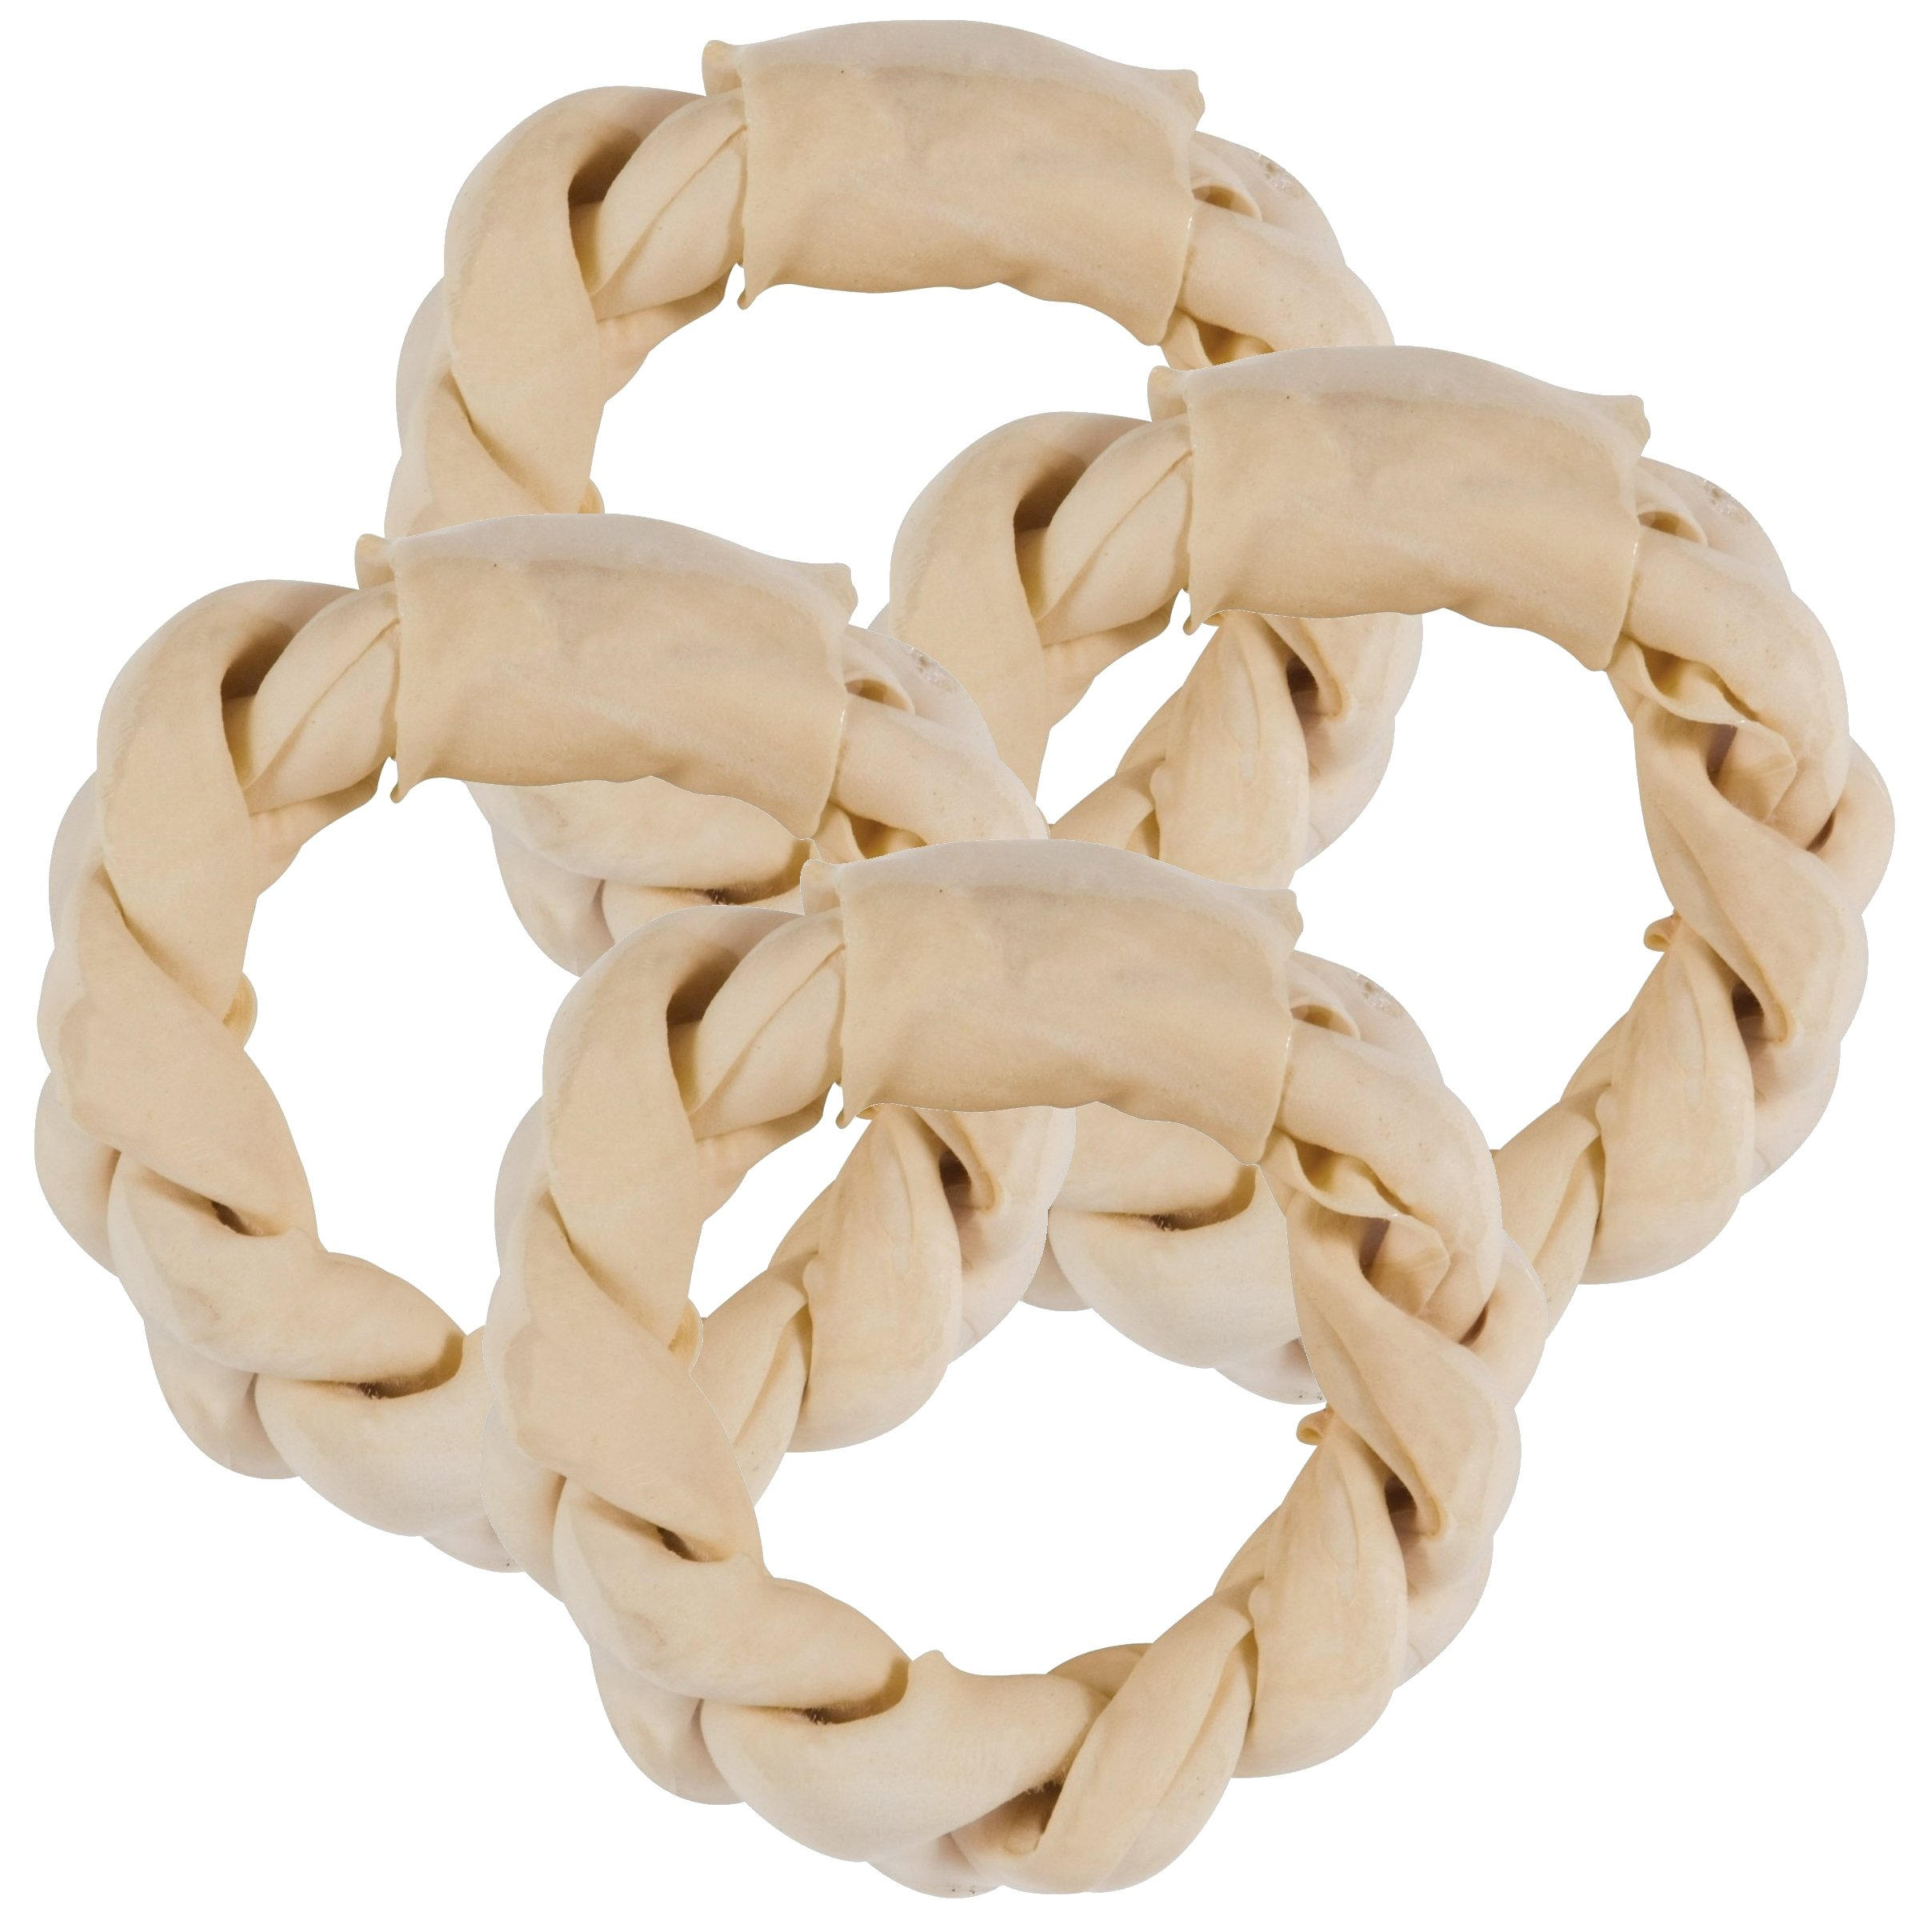 Balls 'n Bones 8'' Natural Braided Rawhide Ring for Large Dogs, Safety-Sealed, 4-Pack by Balls 'n Bones